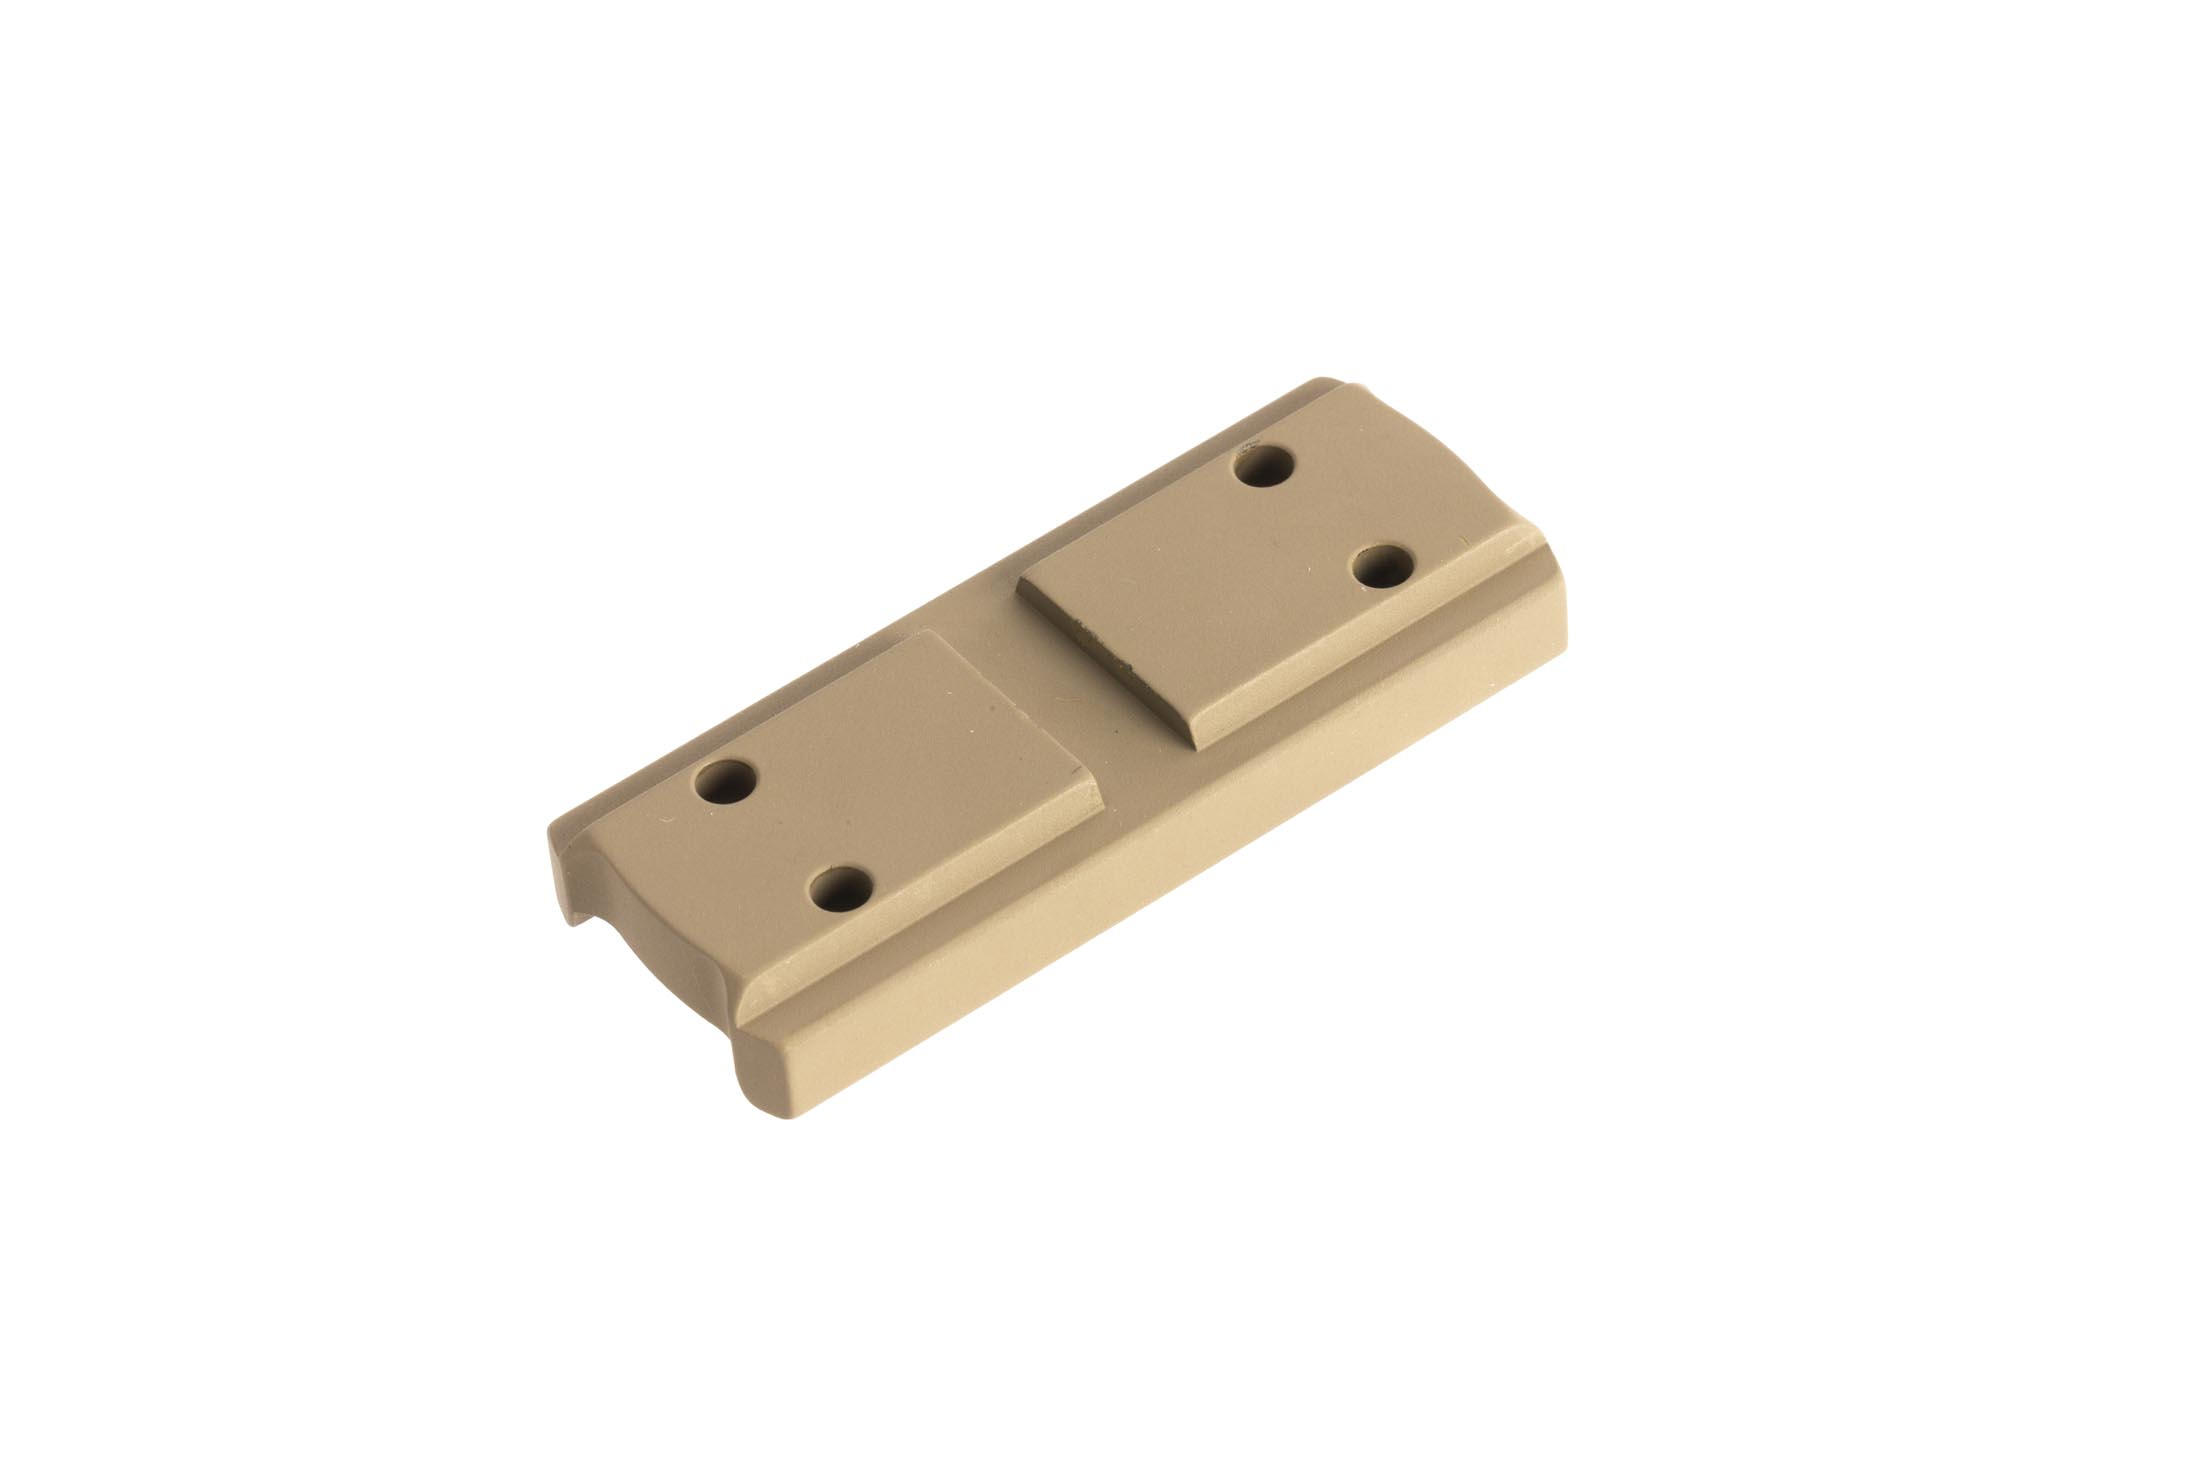 Primary Arms high height spacer with FDE anodized finish for the compact 1X prism scope provides lower 1/3rd cowitness